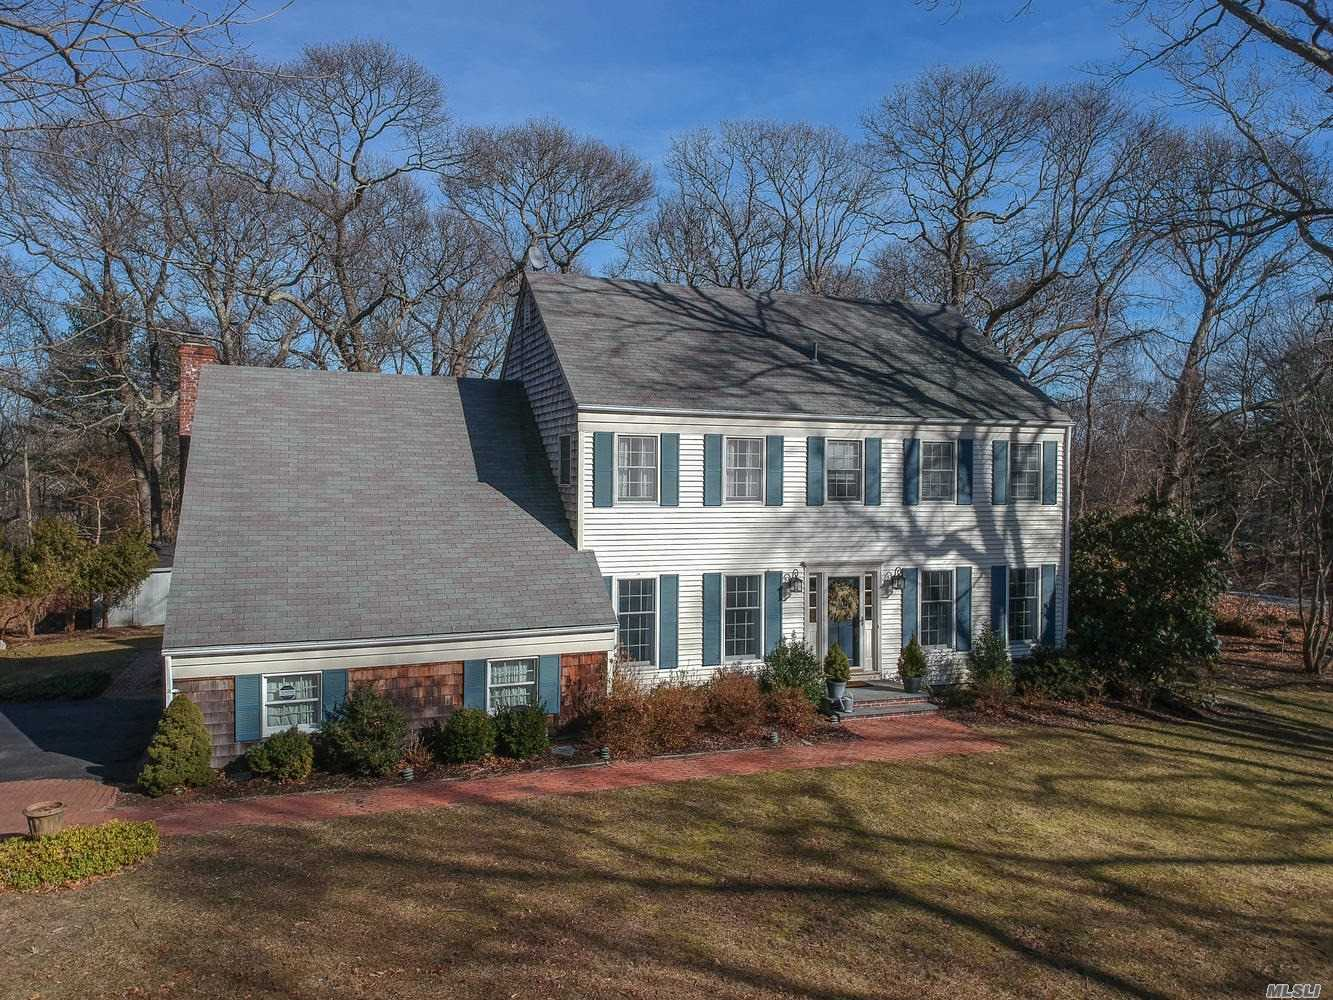 Gorgeous Newly Renovated Colonial Nestled In A Cul-De-Sac Located In Soundview Acres. Featuring Hard Flood Floors Throughout, A Custom Kitchen, Laundry On The Main Level, And A Finished Basement. Situated On Almost An Acre There Is Plenty Of Room For A Pool In The Private Wooded Yard And Less Than A Mile To The Beach.